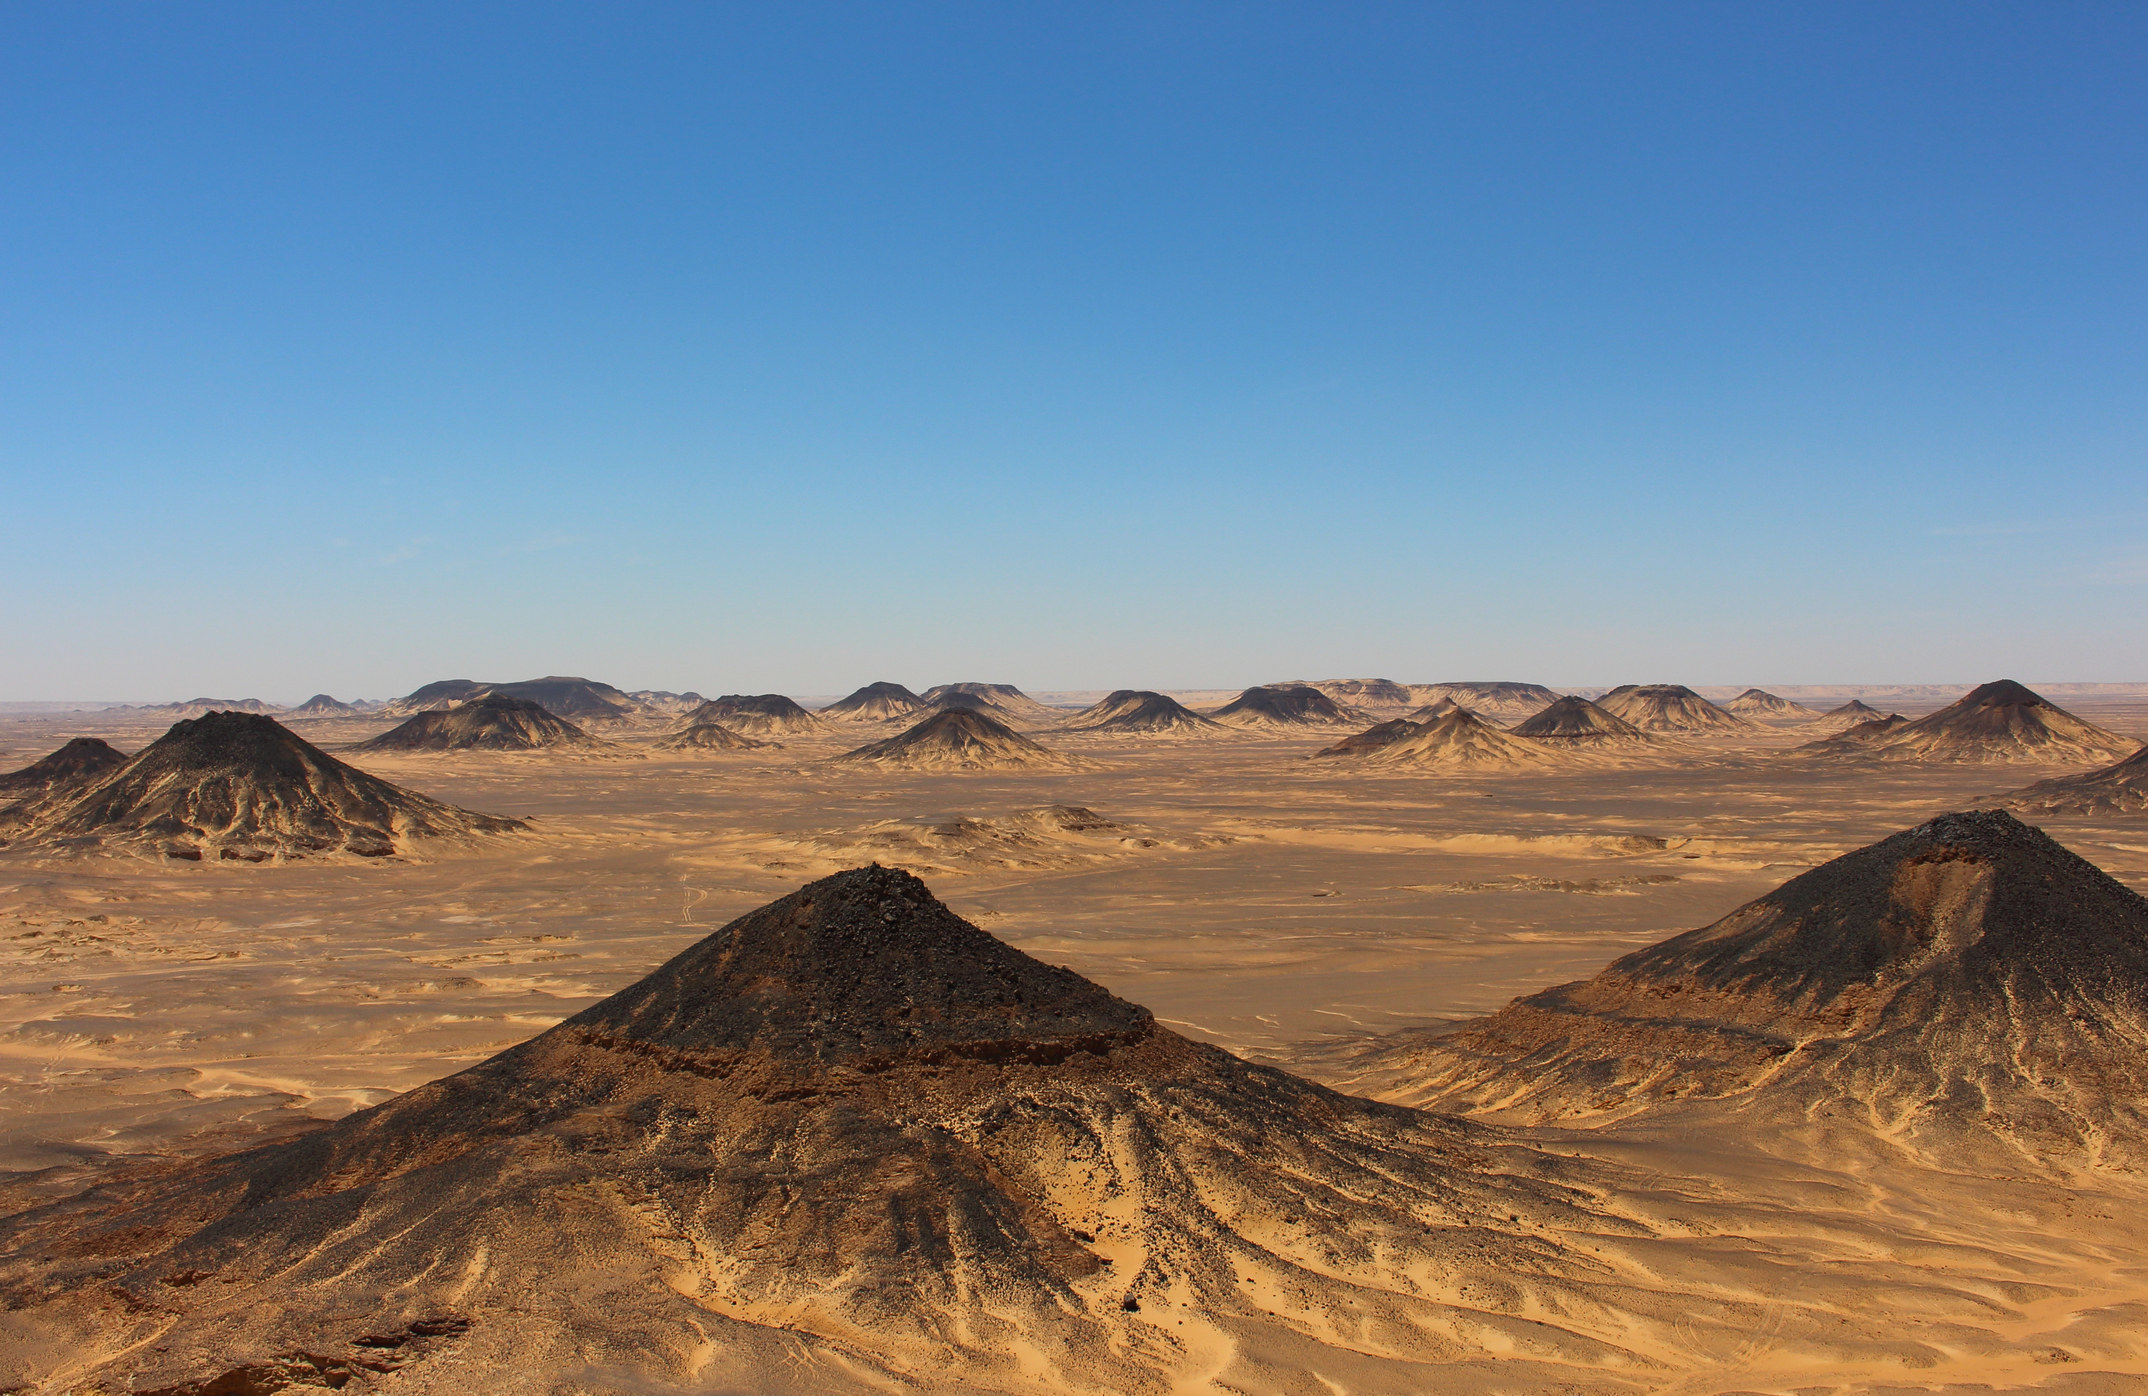 Black capped hills in a desert area